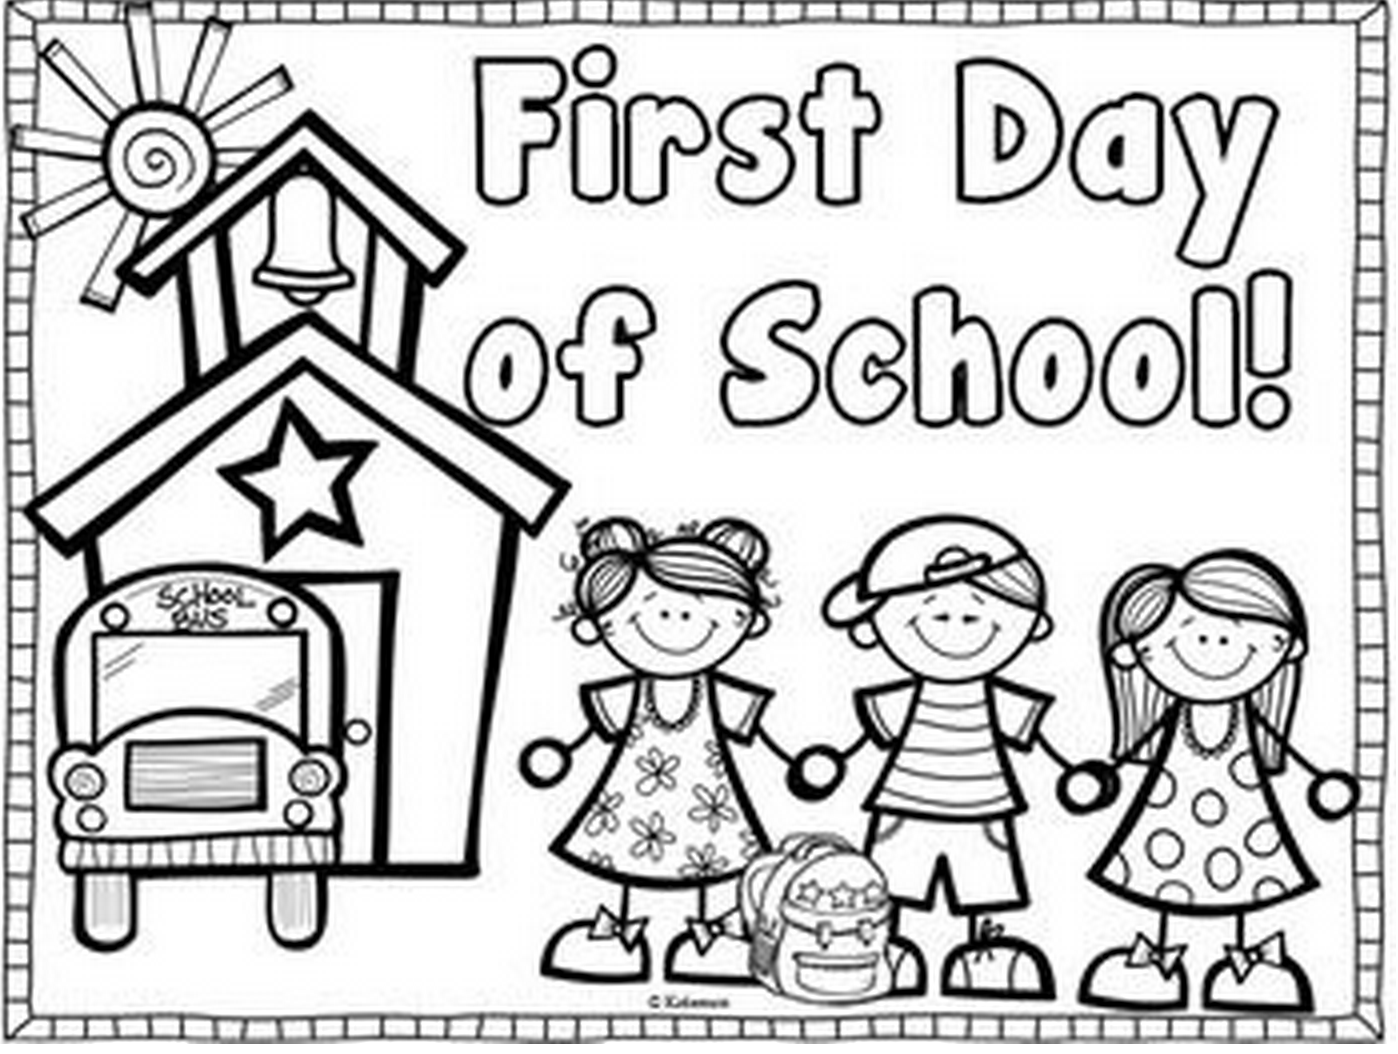 100Th Day Of School Coloring Pages First Day Of School & Coloring Book